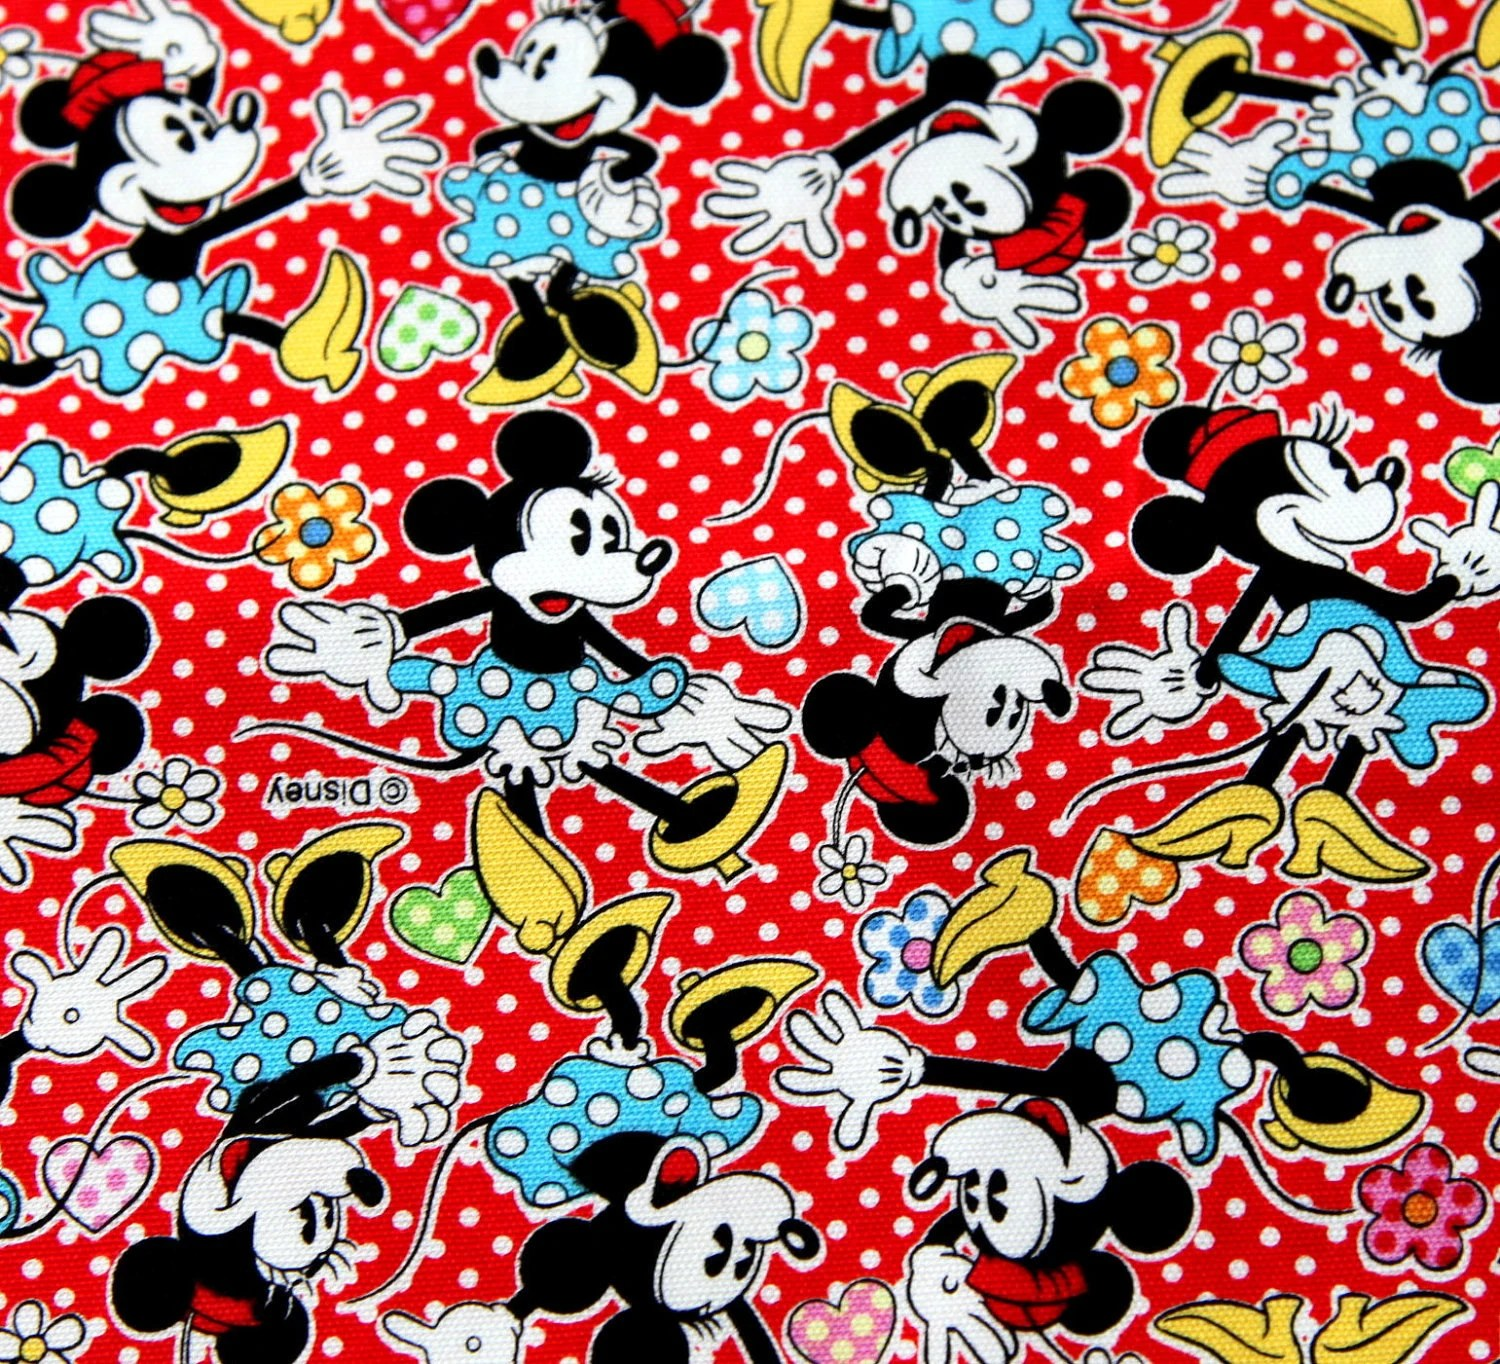 Cute Disney Villains Iphone Wallpaper Disney Cartoon Mickey Mouse And Minnie Mouse Print Japanese